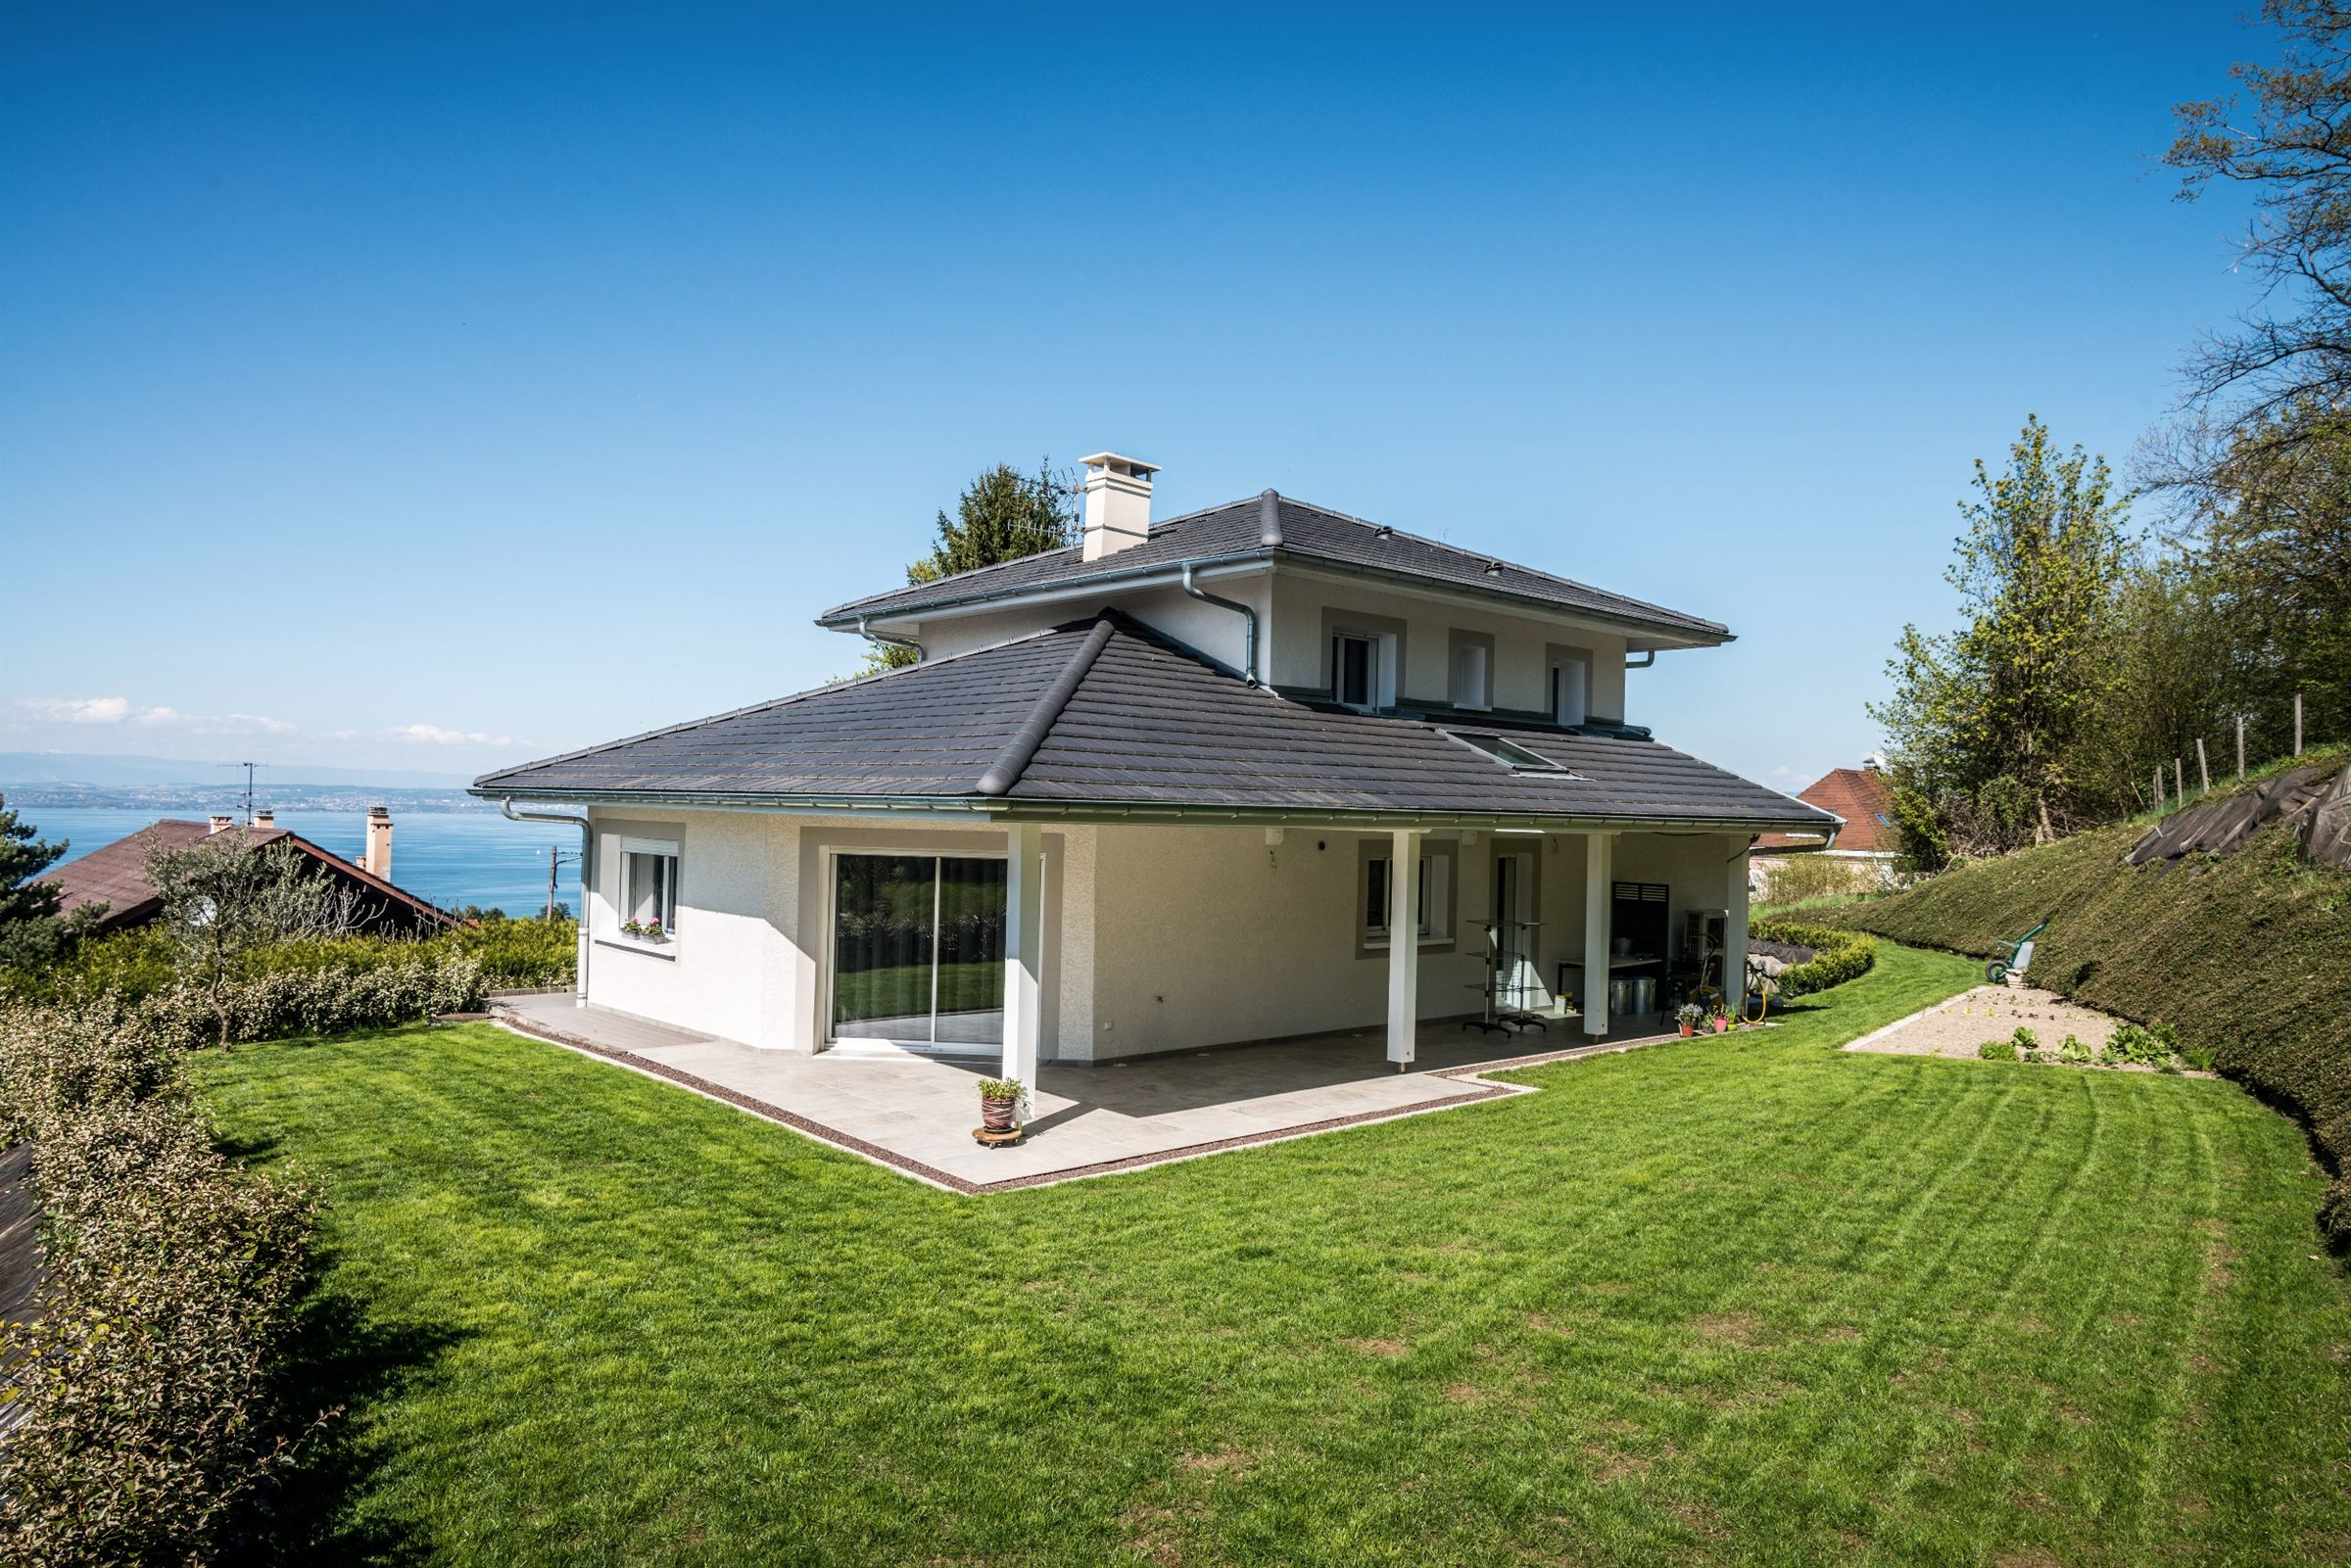 Single Family Home for Sale at NEAR EVIAN 136 M2 HAB VIEW ON THE LAKE Publier, Rhone-Alpes, 74500 France